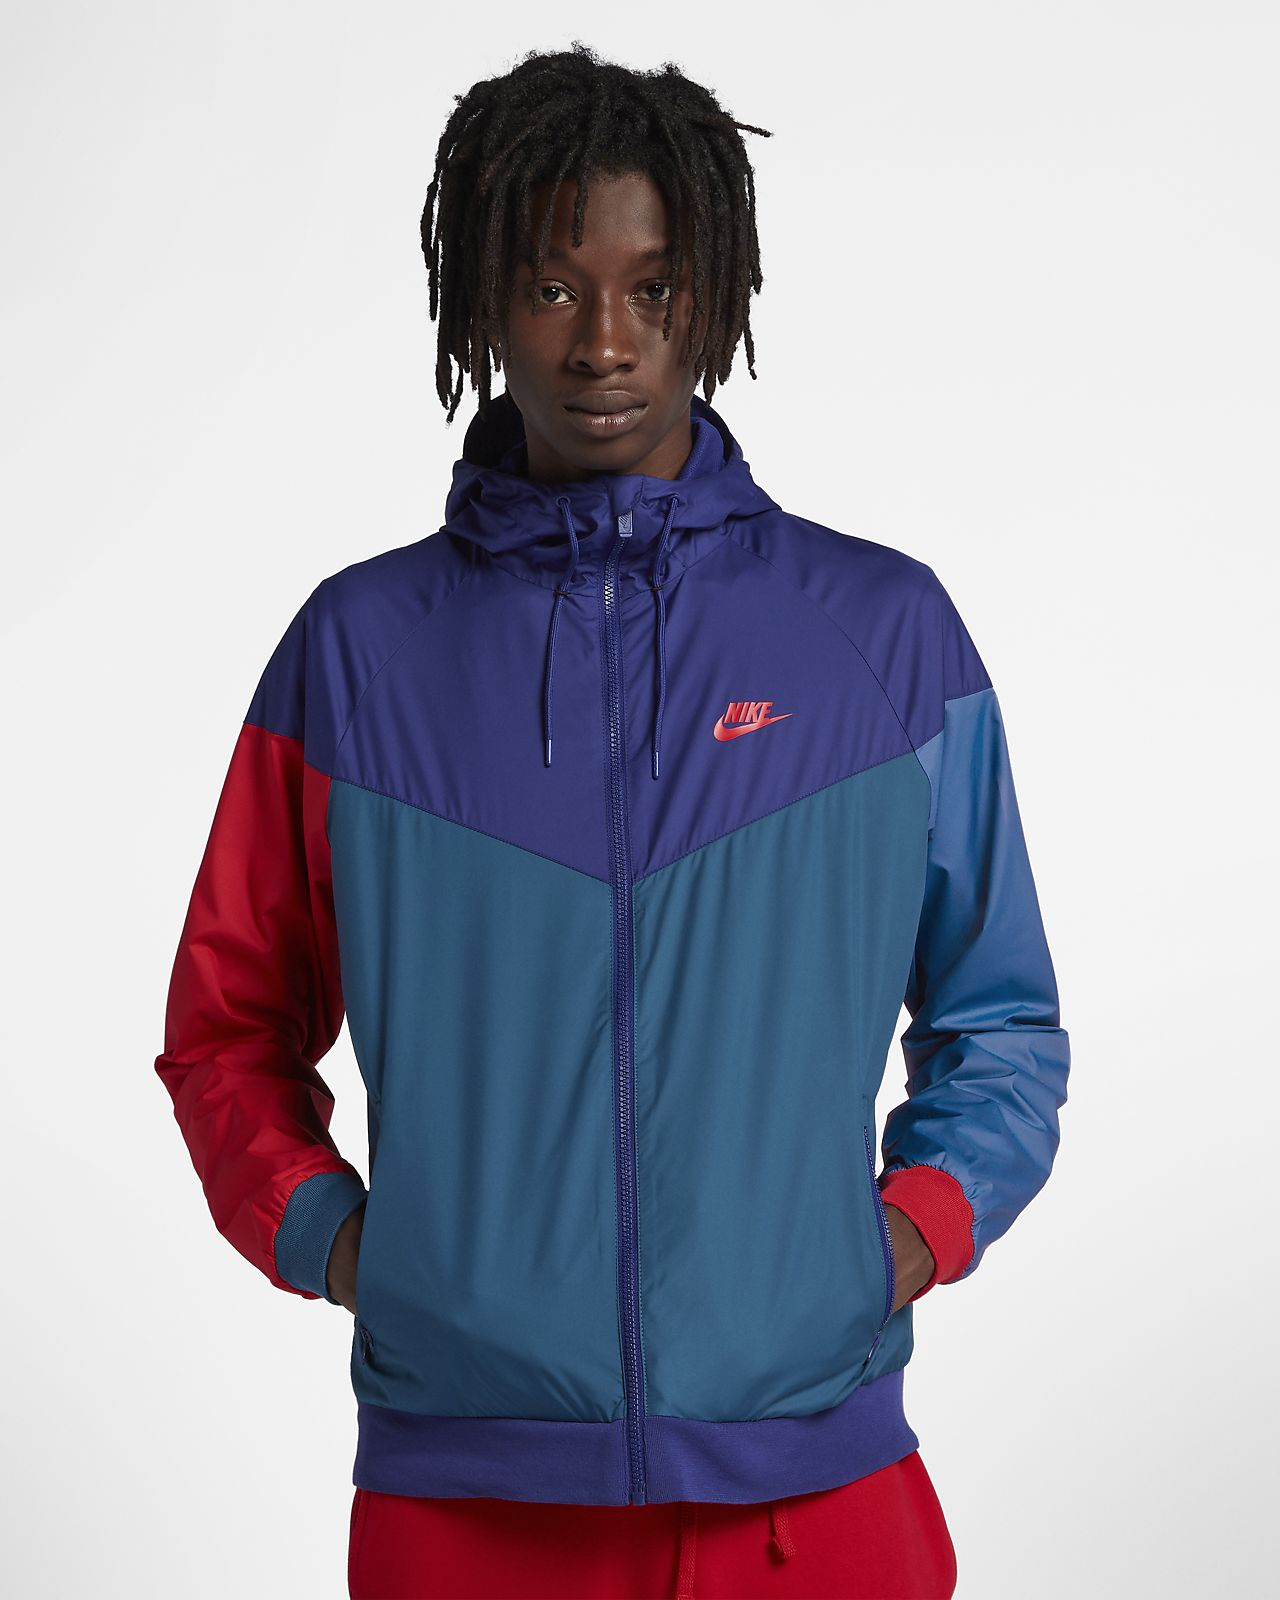 2d4a3b563346 Low Resolution Nike Sportswear Windrunner Men s Jacket Nike Sportswear  Windrunner Men s Jacket